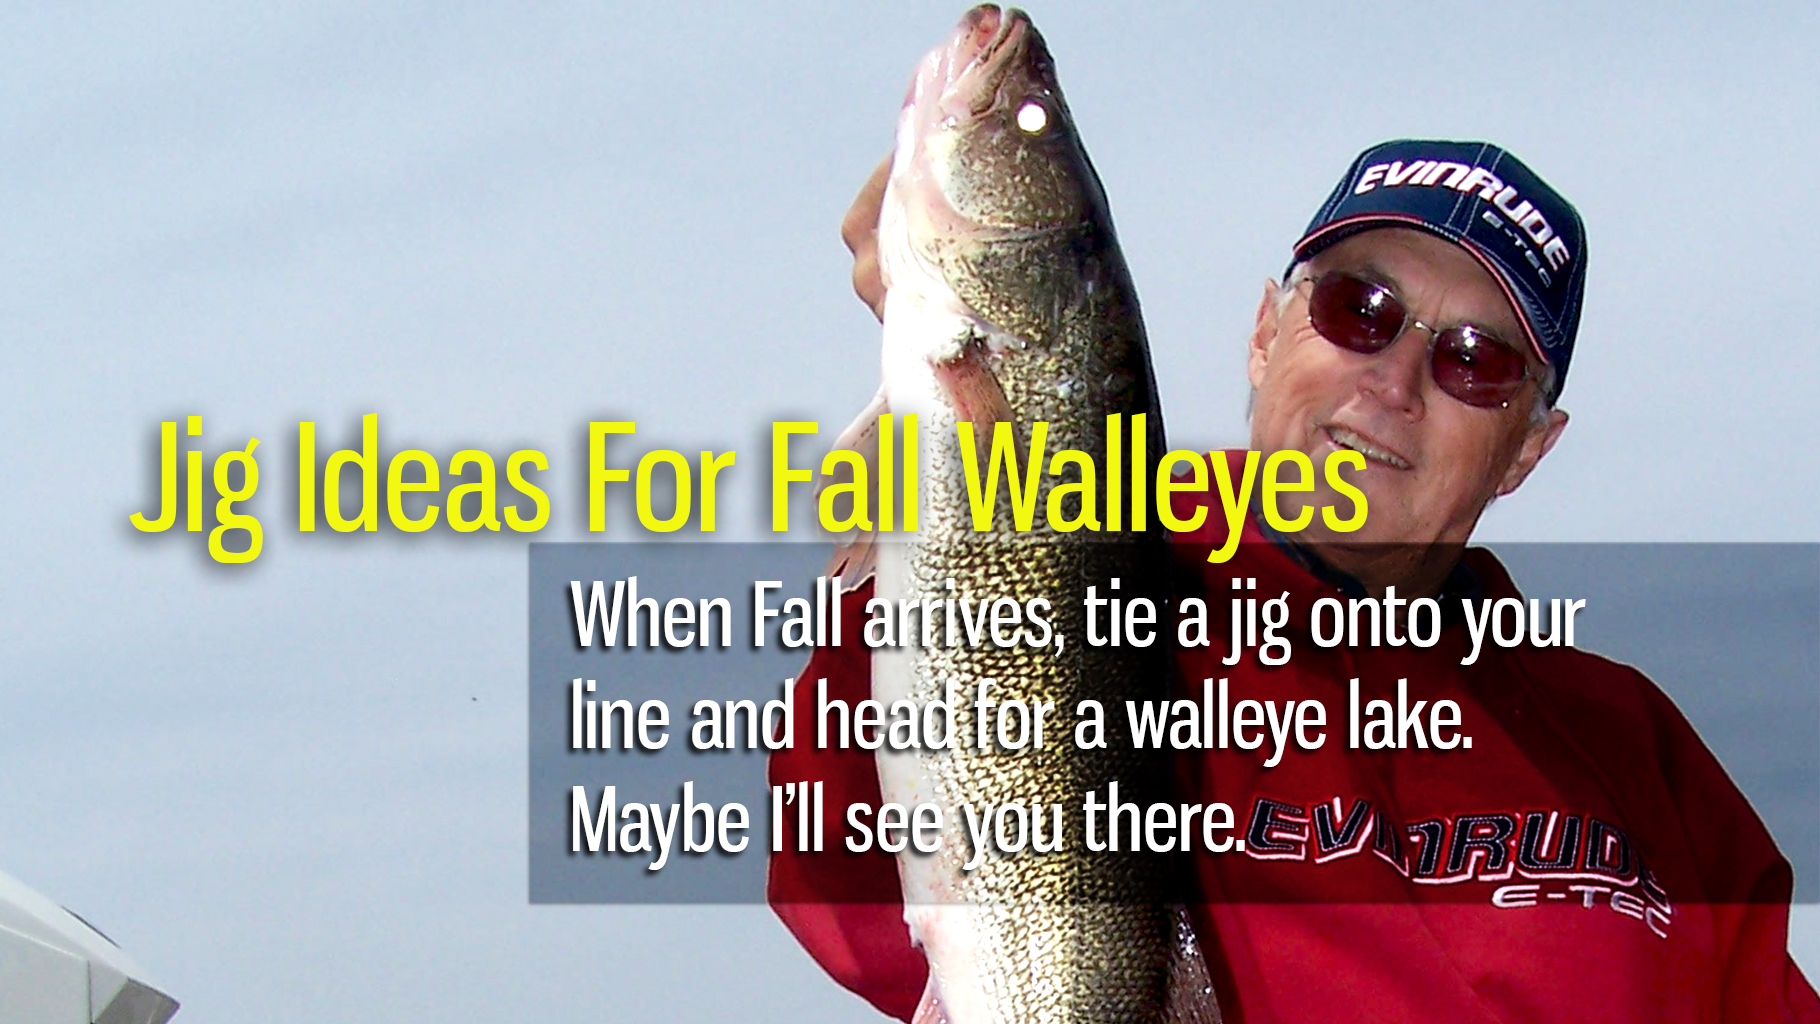 Jig Ideas For Fall Walleyes